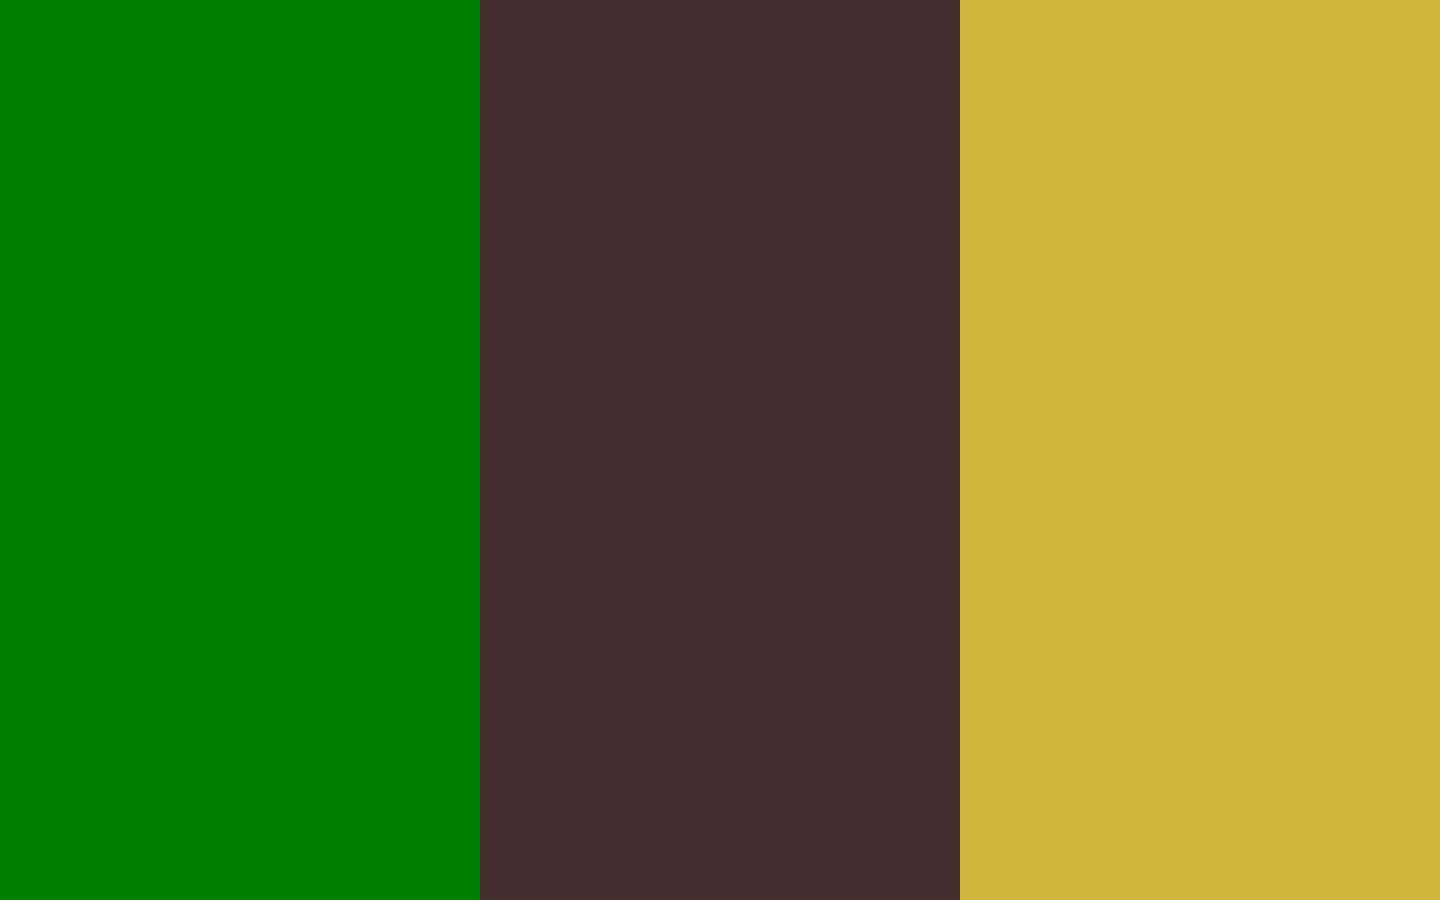 1440x900 office green old burgundy and gold three color 1440x900